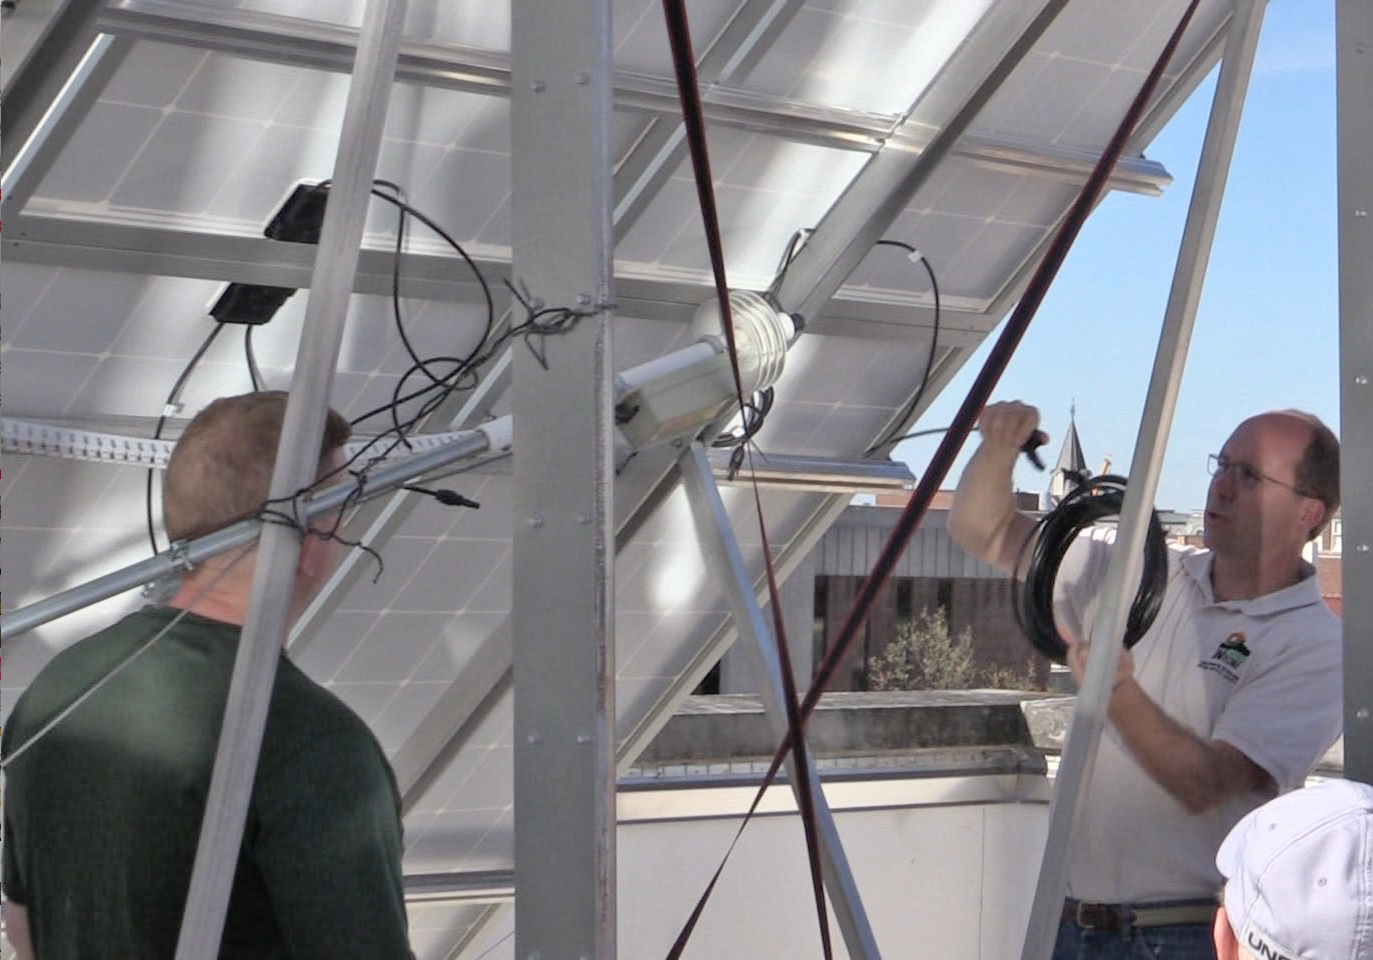 Bill Hutzel (right) discusses the new array's plug-and-play electrical connections with the installation team